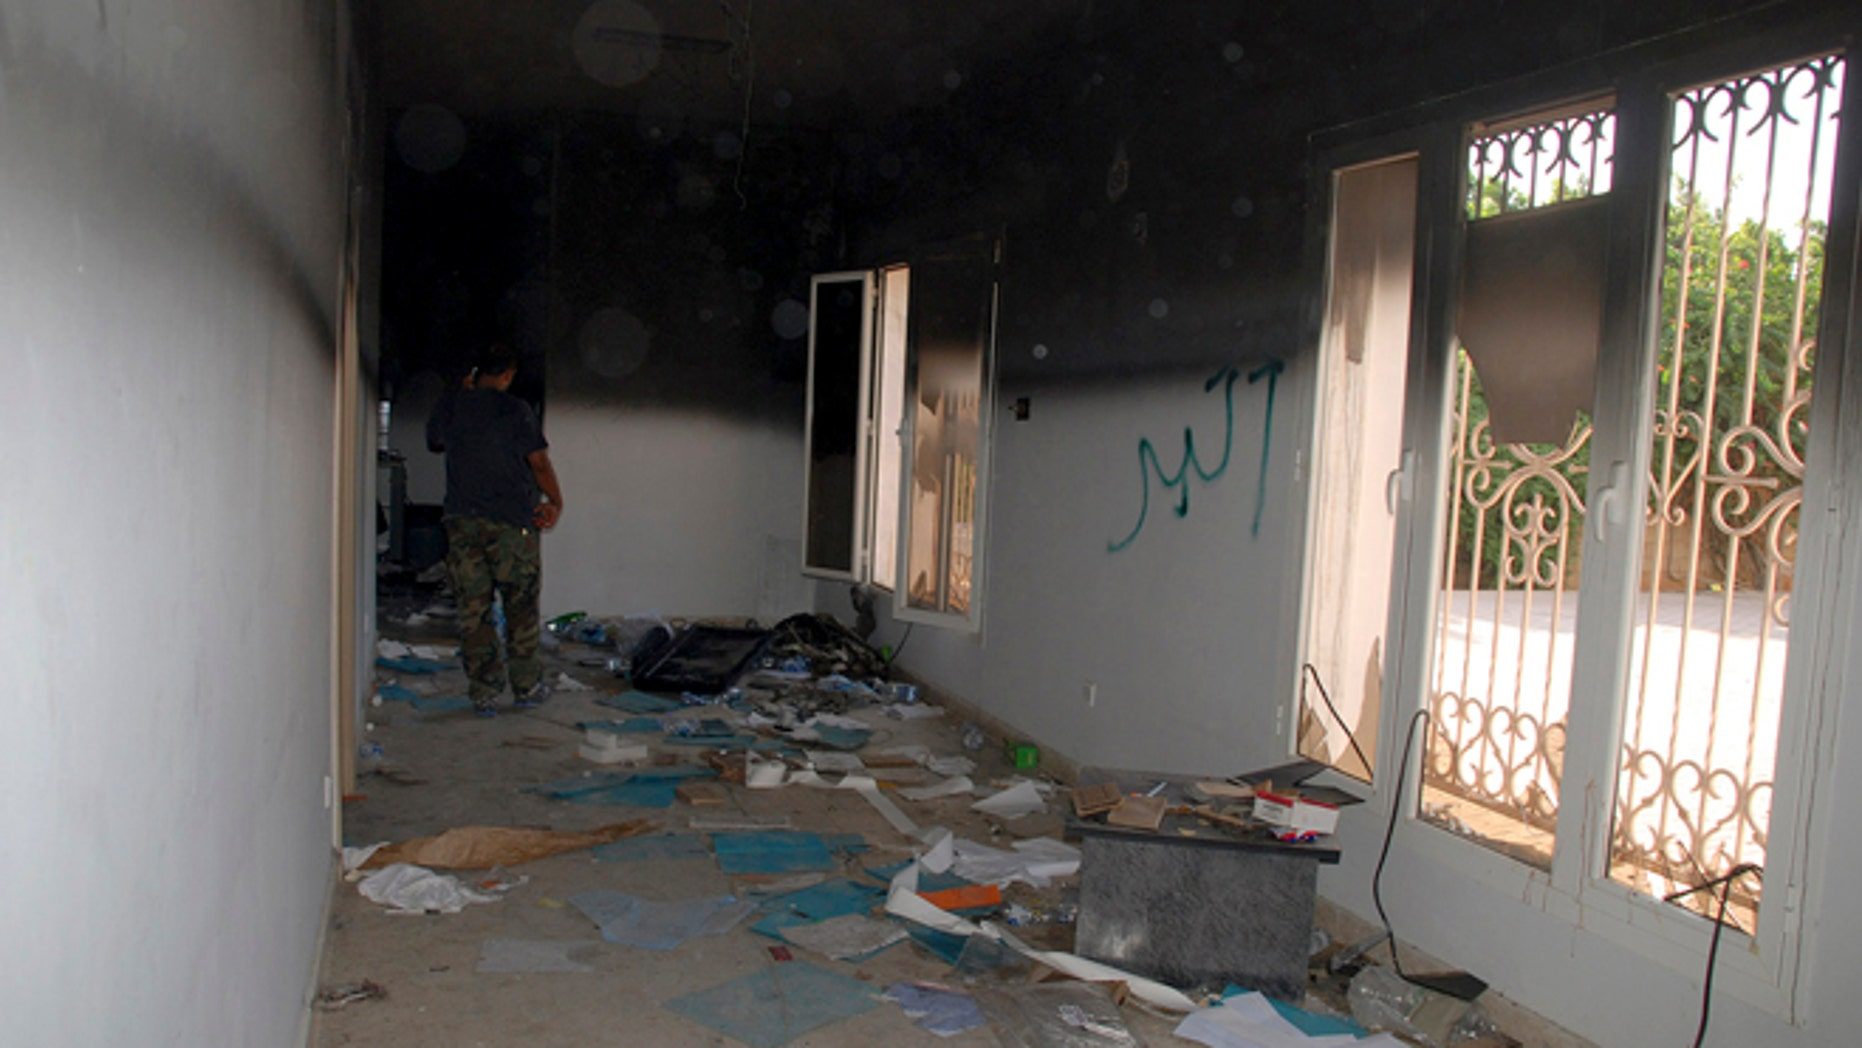 Sept. 12, 2012: This file photo shows a man walking through a room in the gutted U.S. consulate in Benghazi, Libya, after an attack that killed four Americans, including Ambassador Chris Stevens.